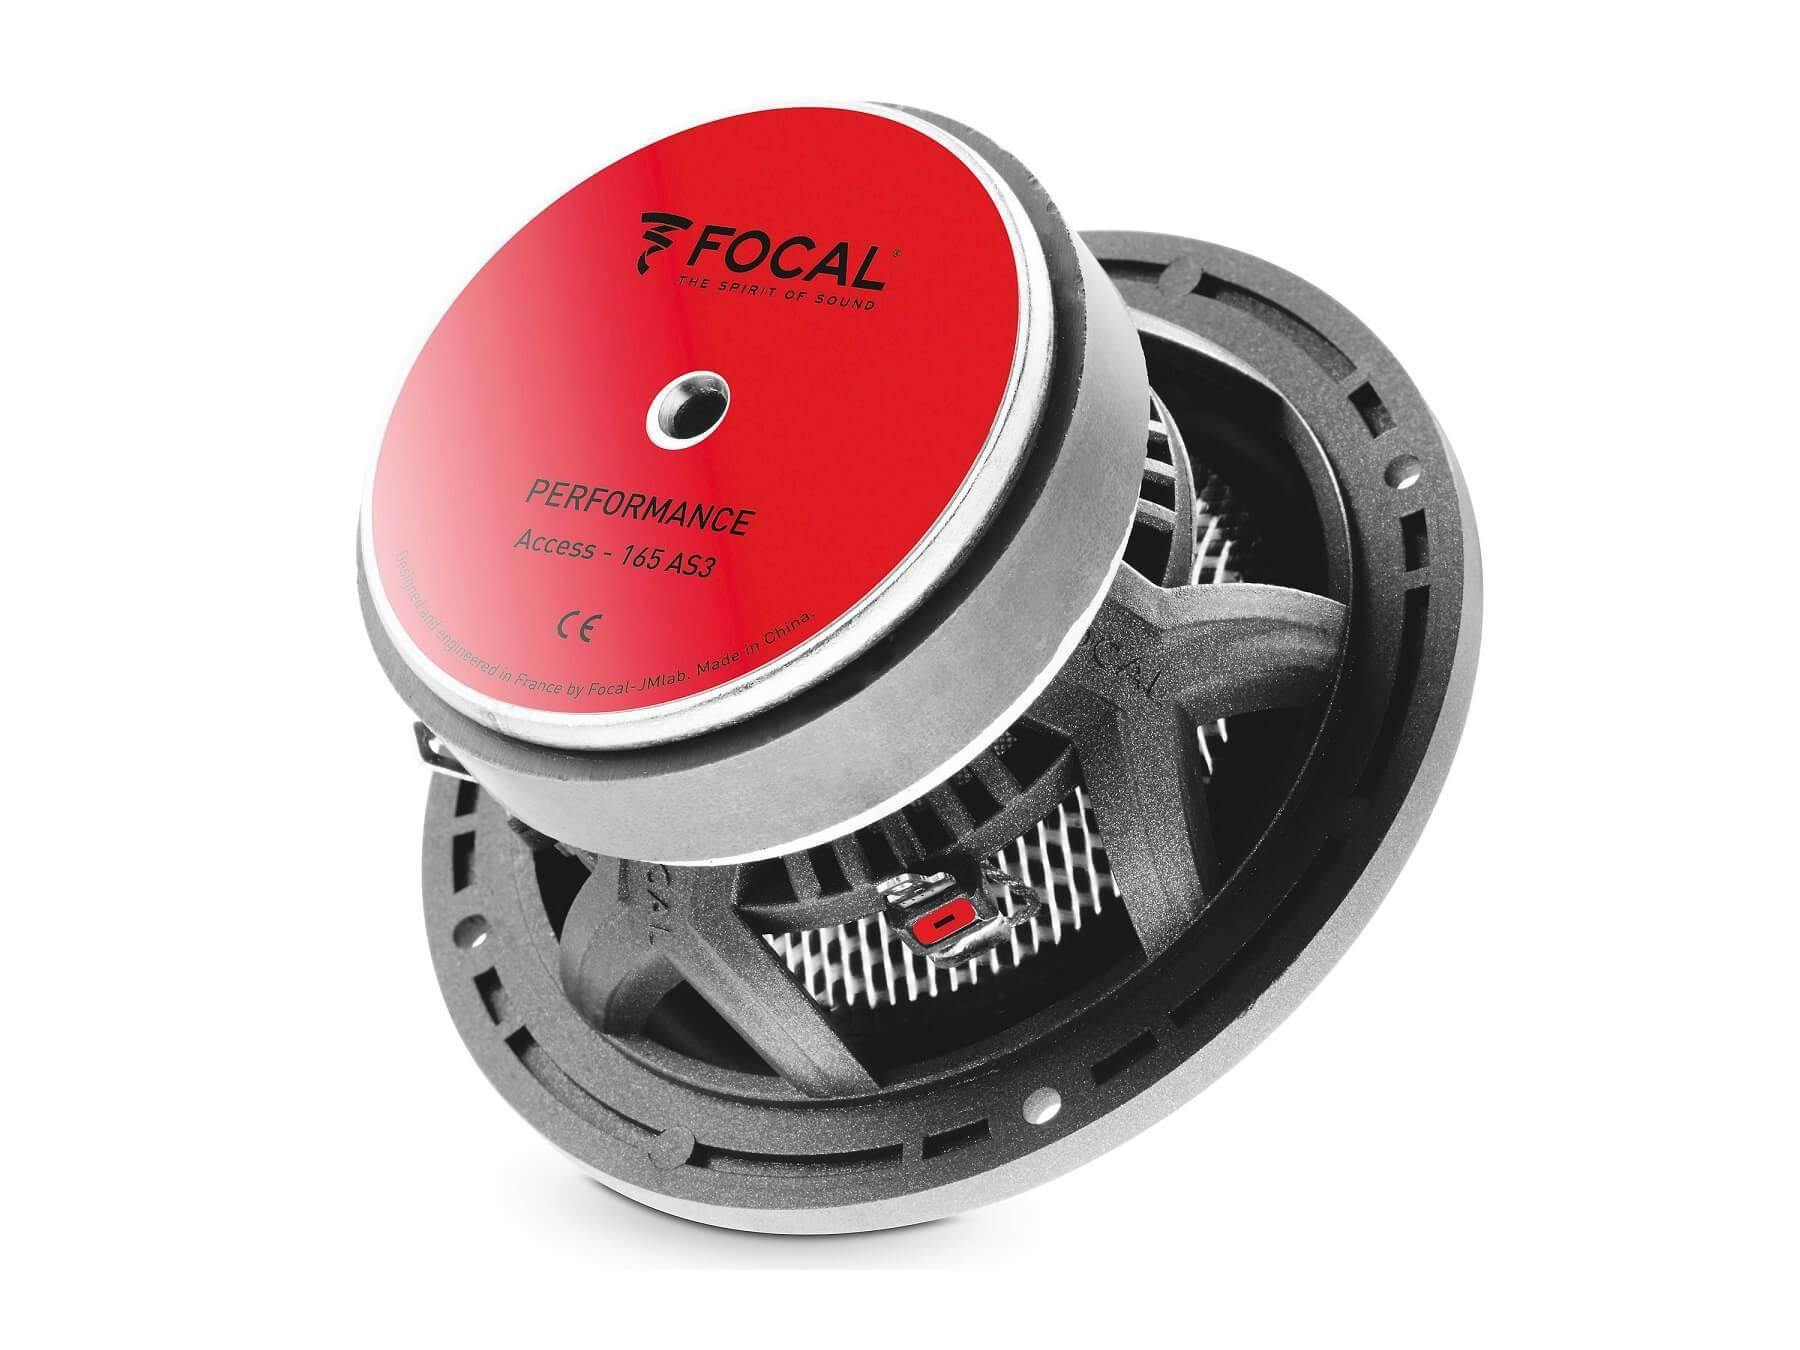 Focal Performance Access 165 AS3 - Mid-Range Back